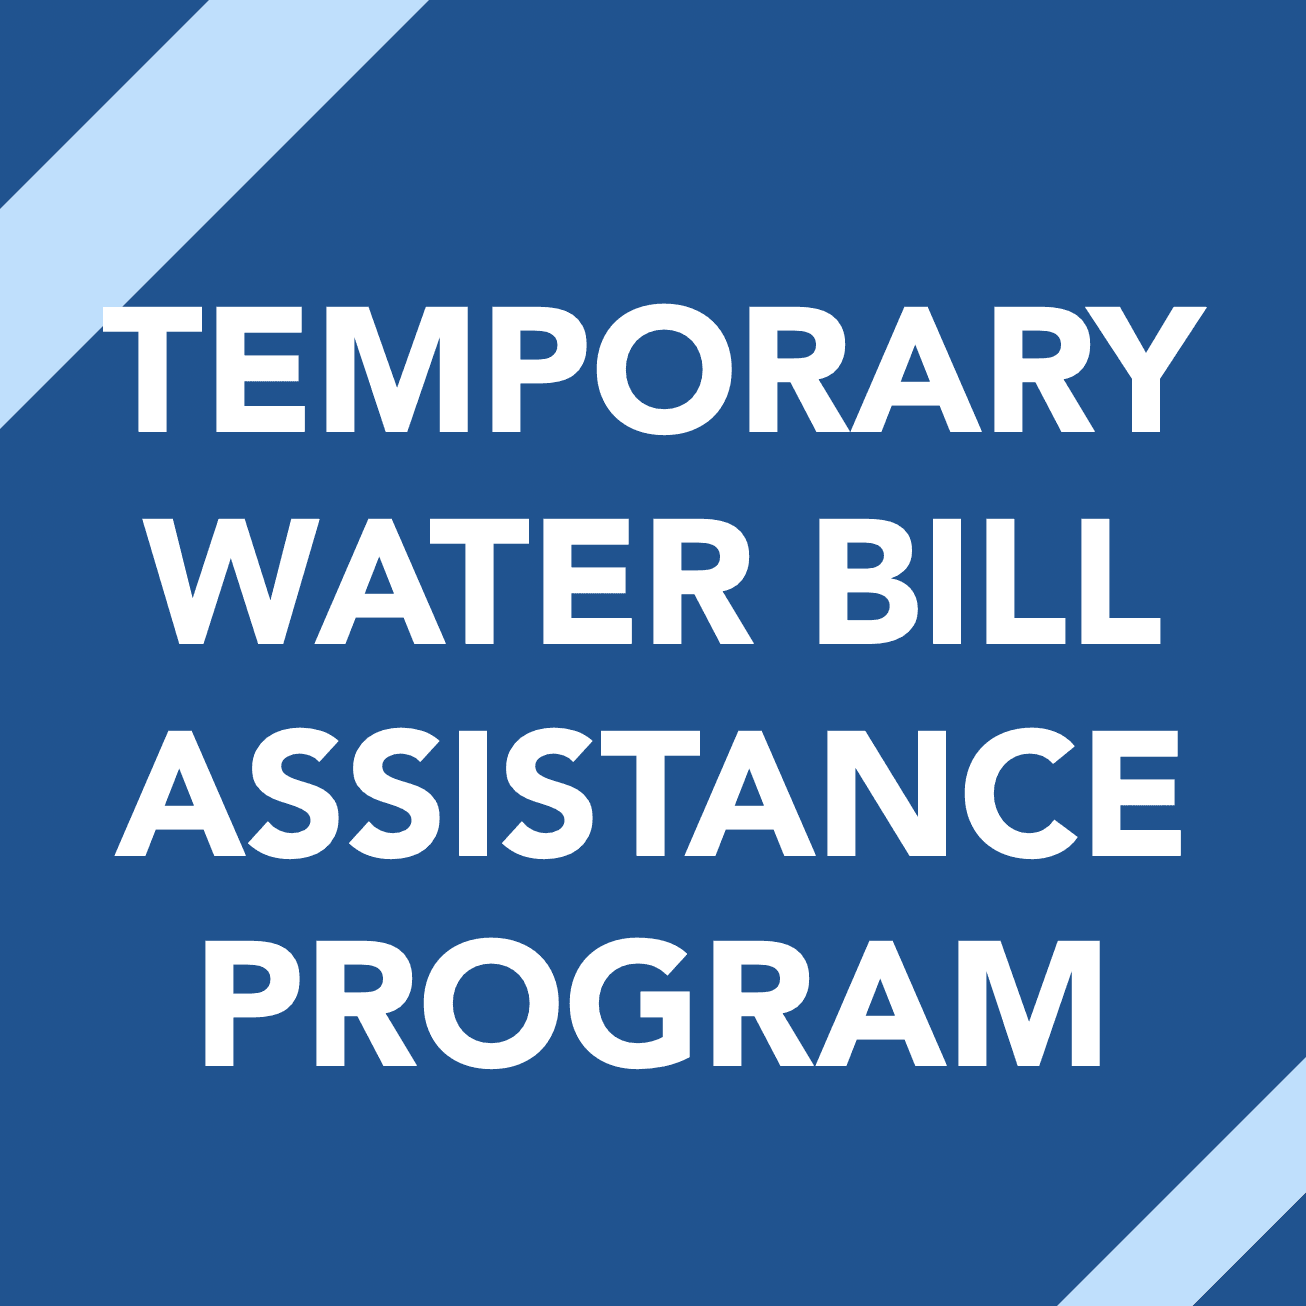 temporary water bill assistance program